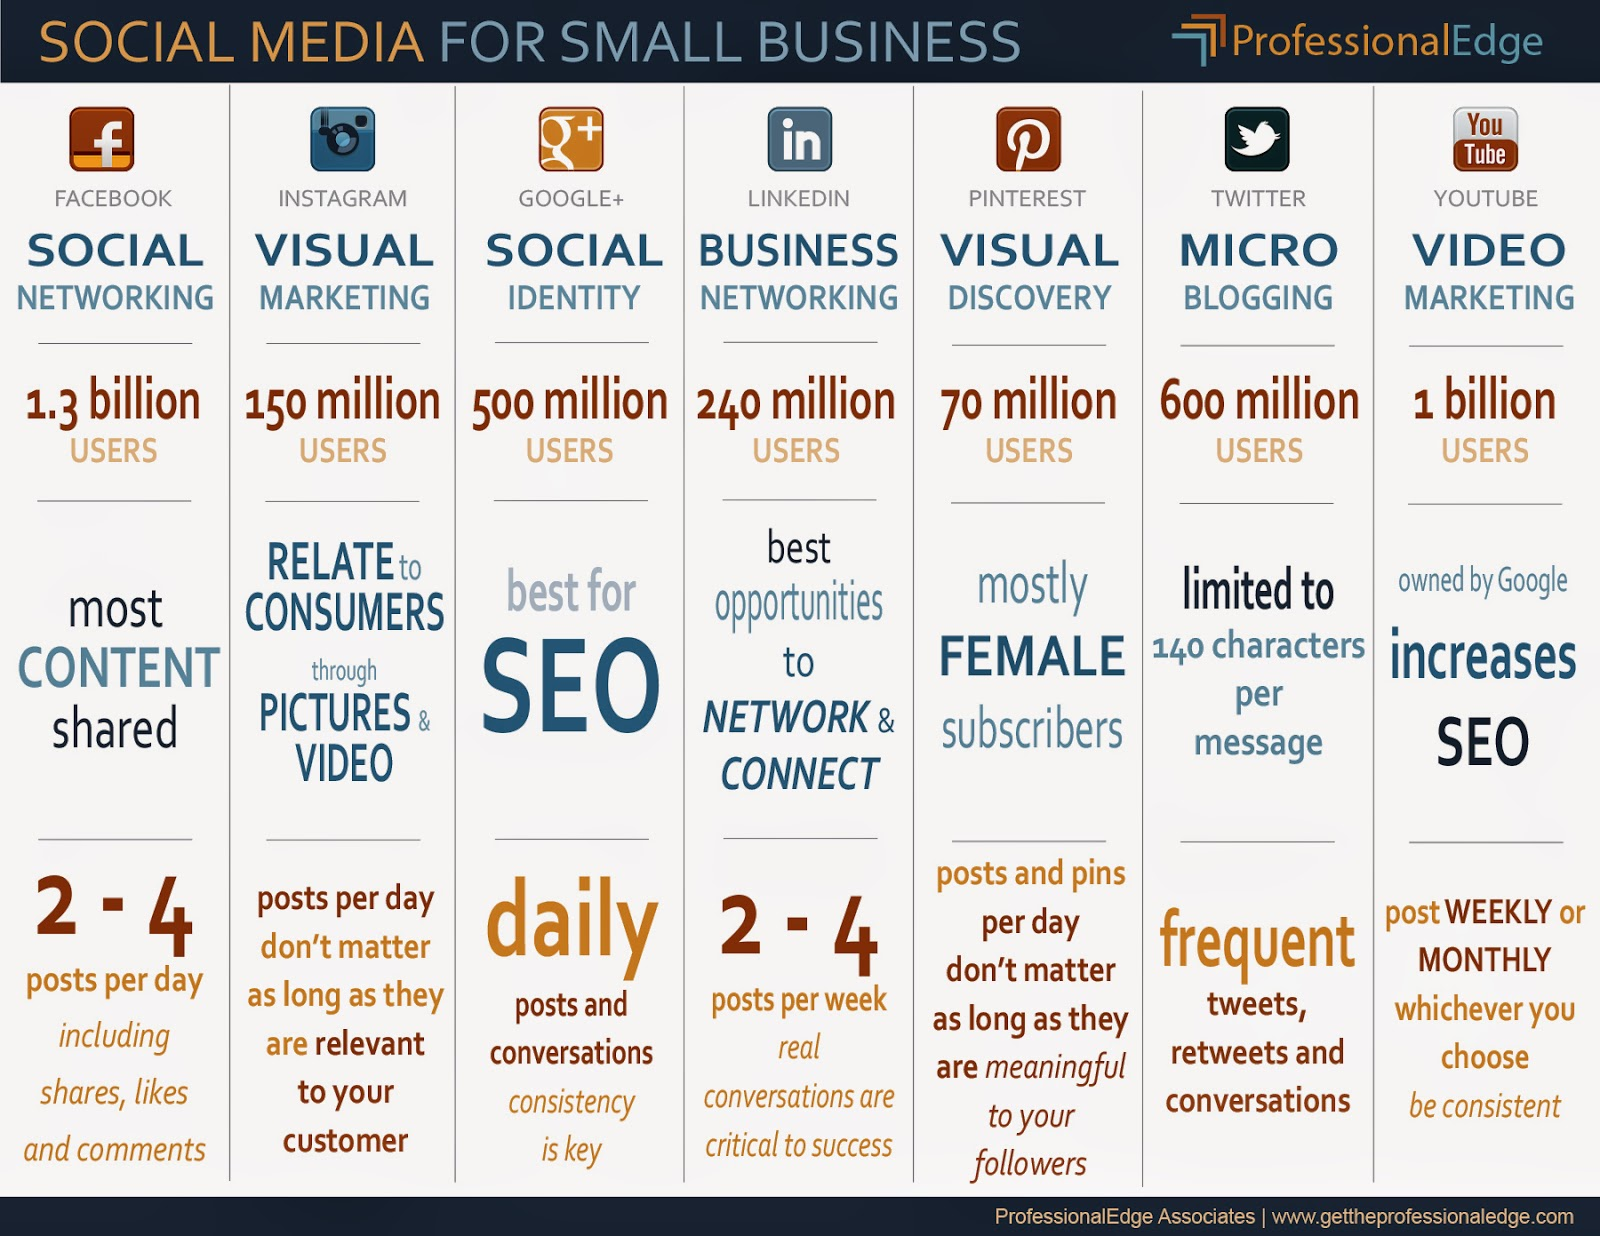 Social Media Infographic developed by ProfessionalEdge